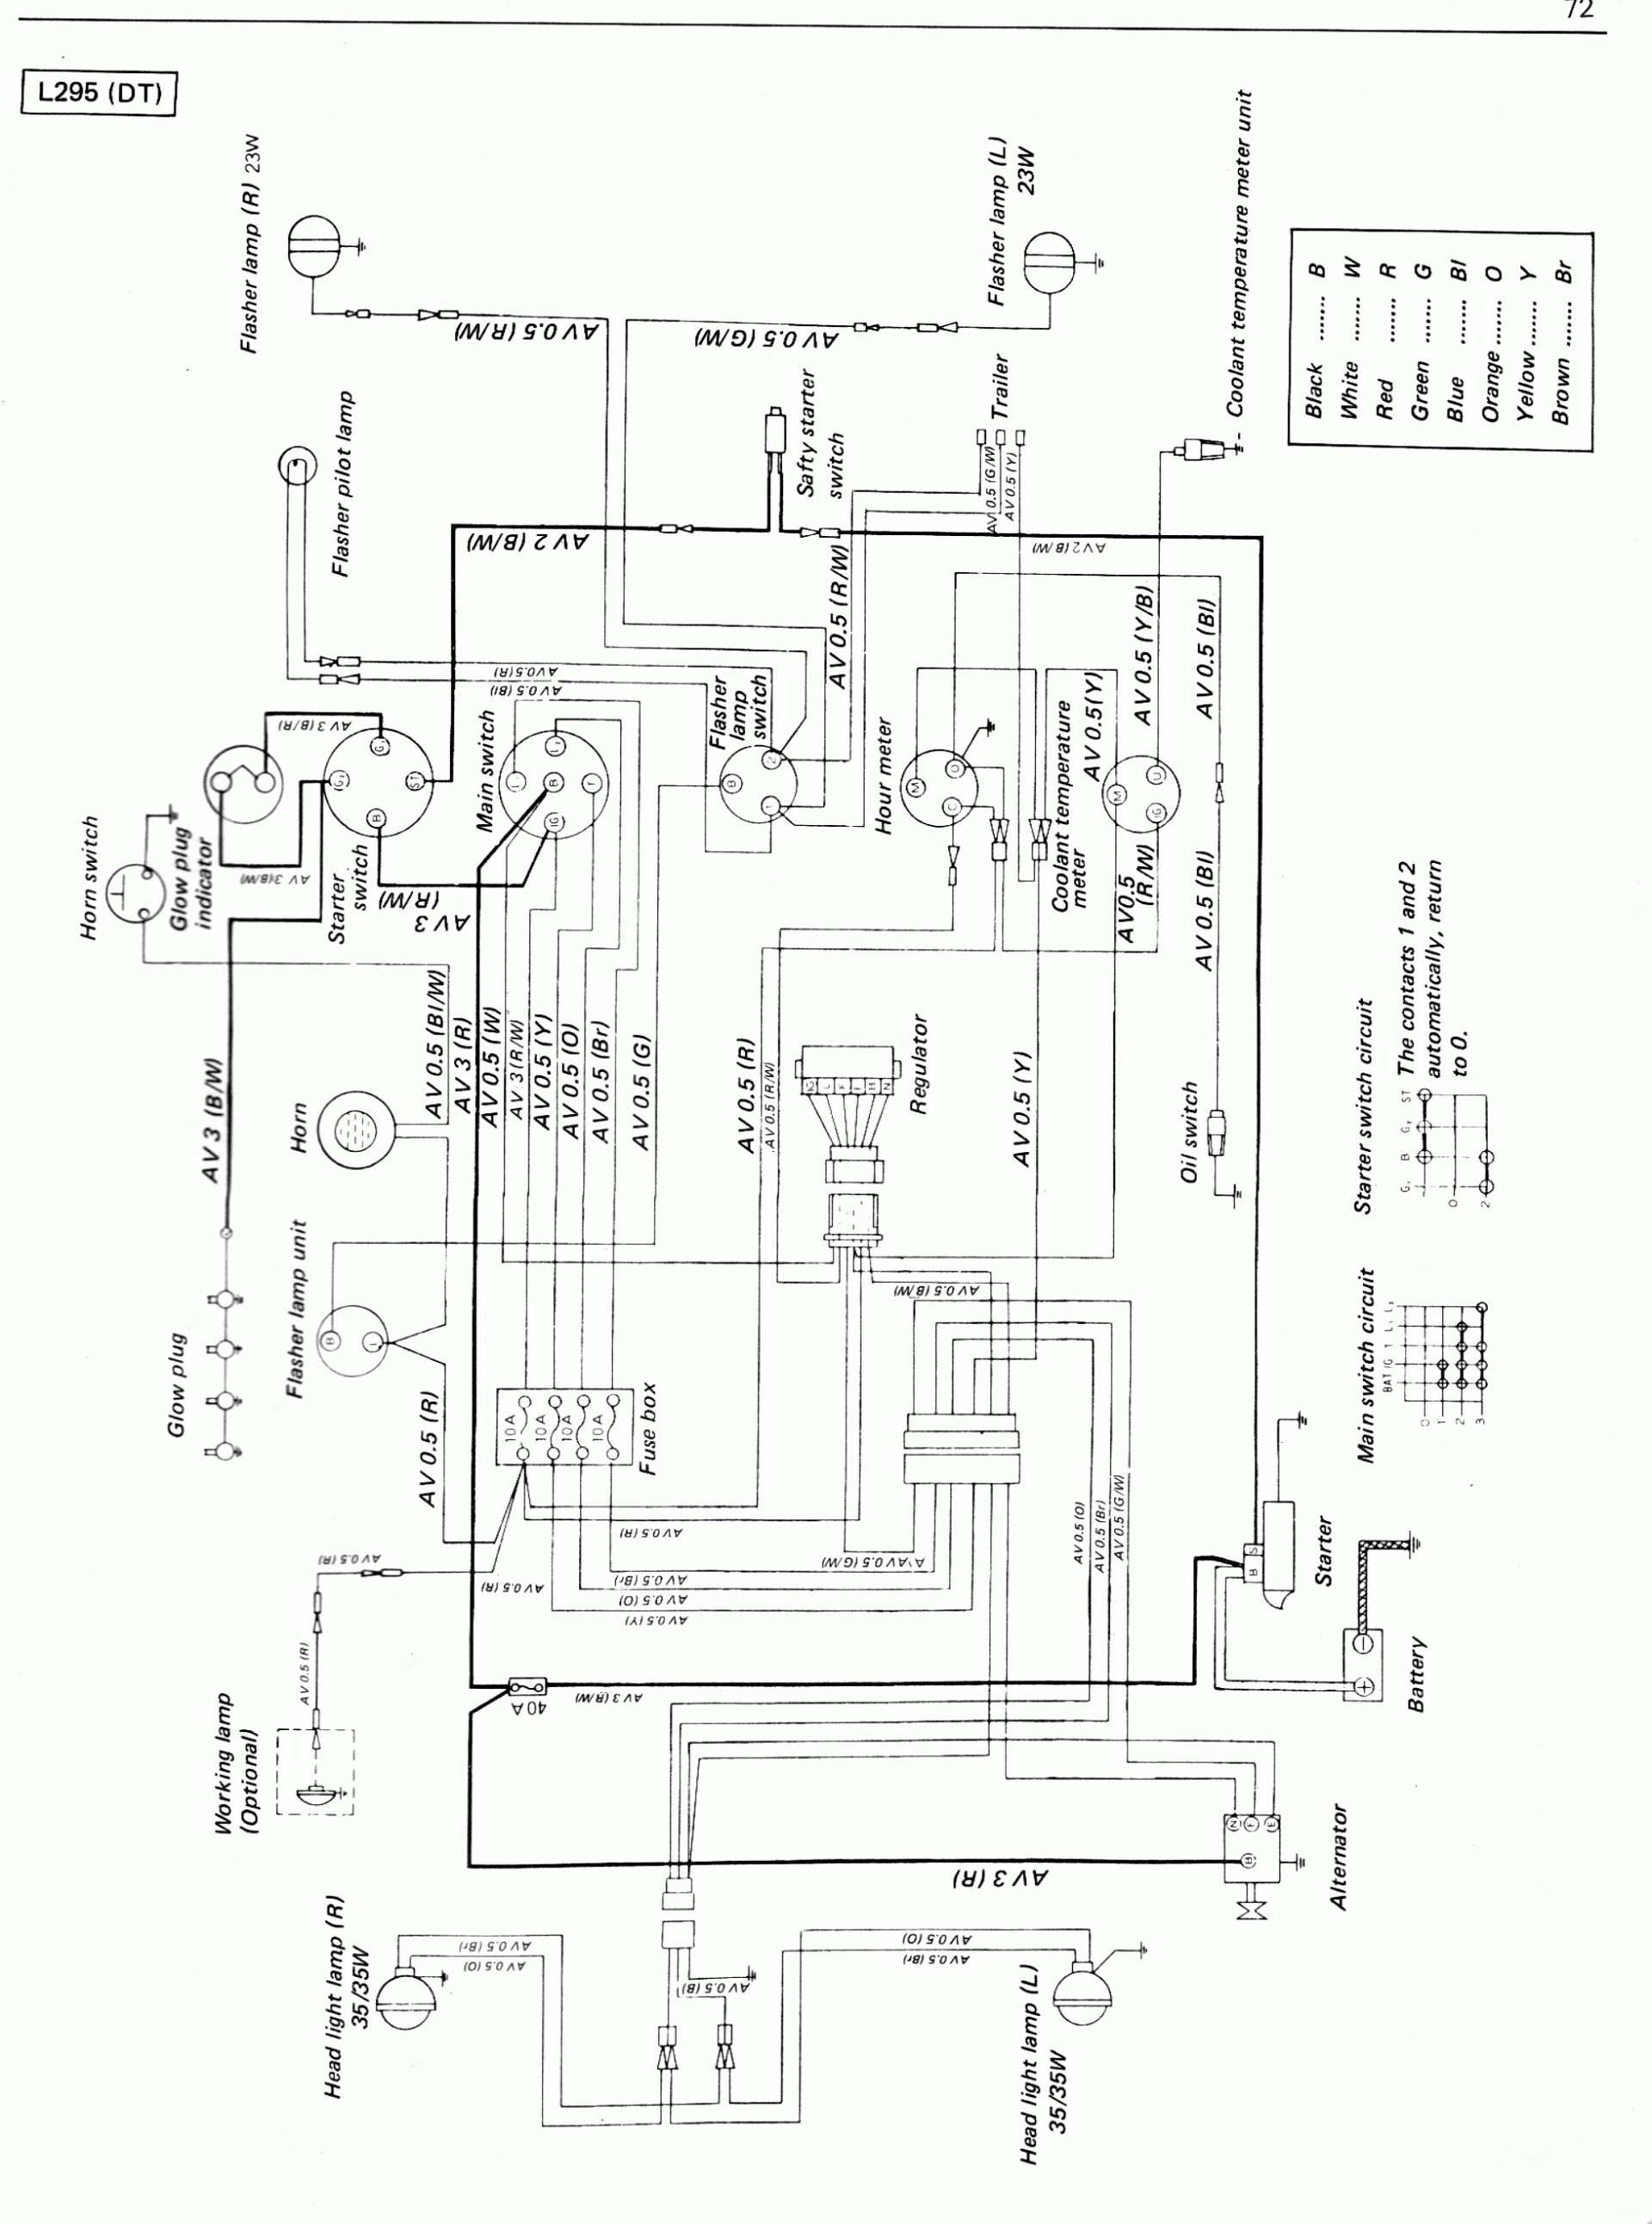 Kubota Diesel Ignition Switch Wiring Diagram